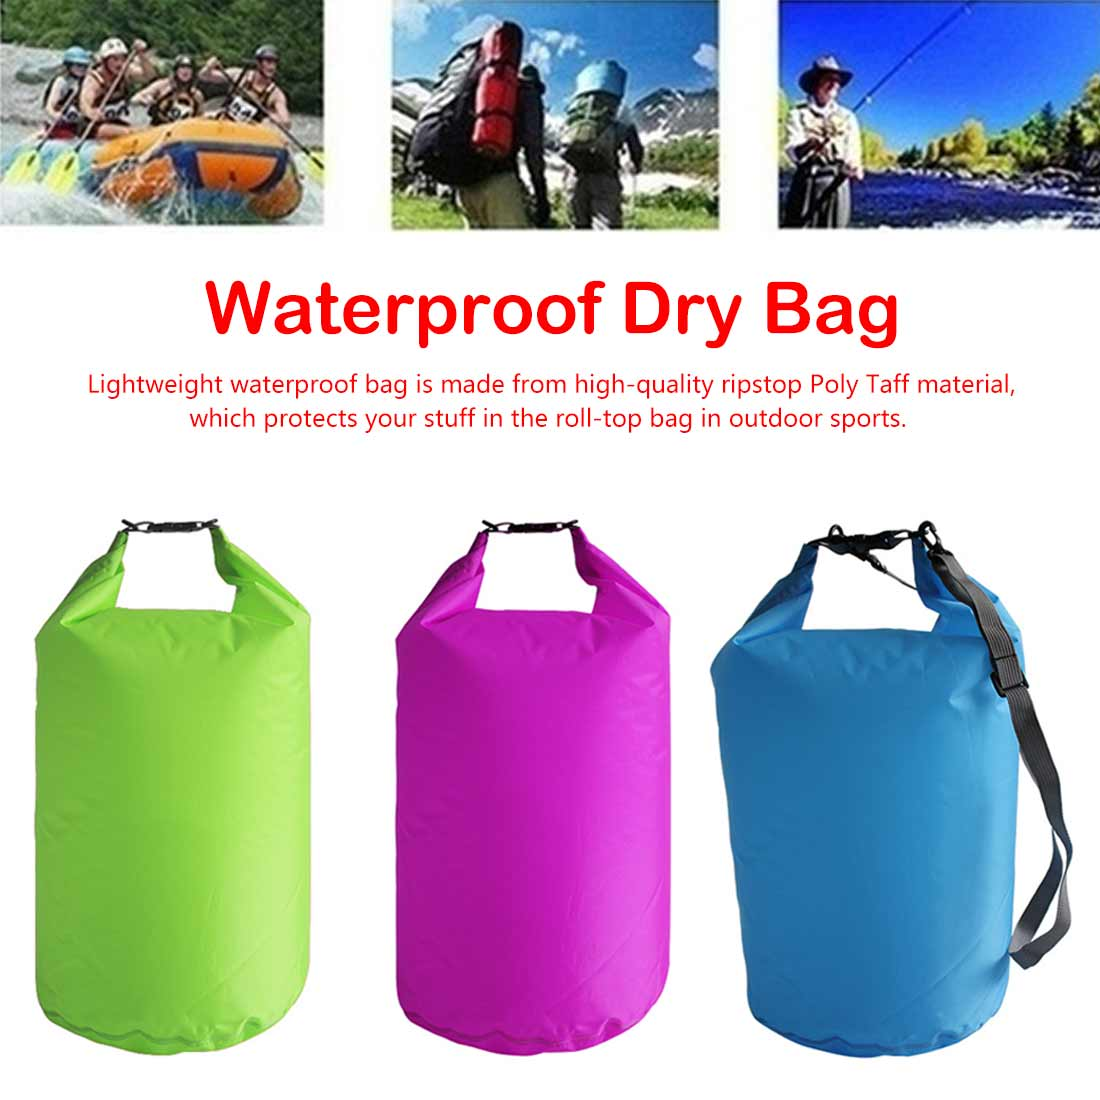 5L/10L/20L Outdoor Dry Waterproof Bag Dry Bag Sack Waterproof Floating Dry Gear Bags For Boating Fishing Rafting Swimming